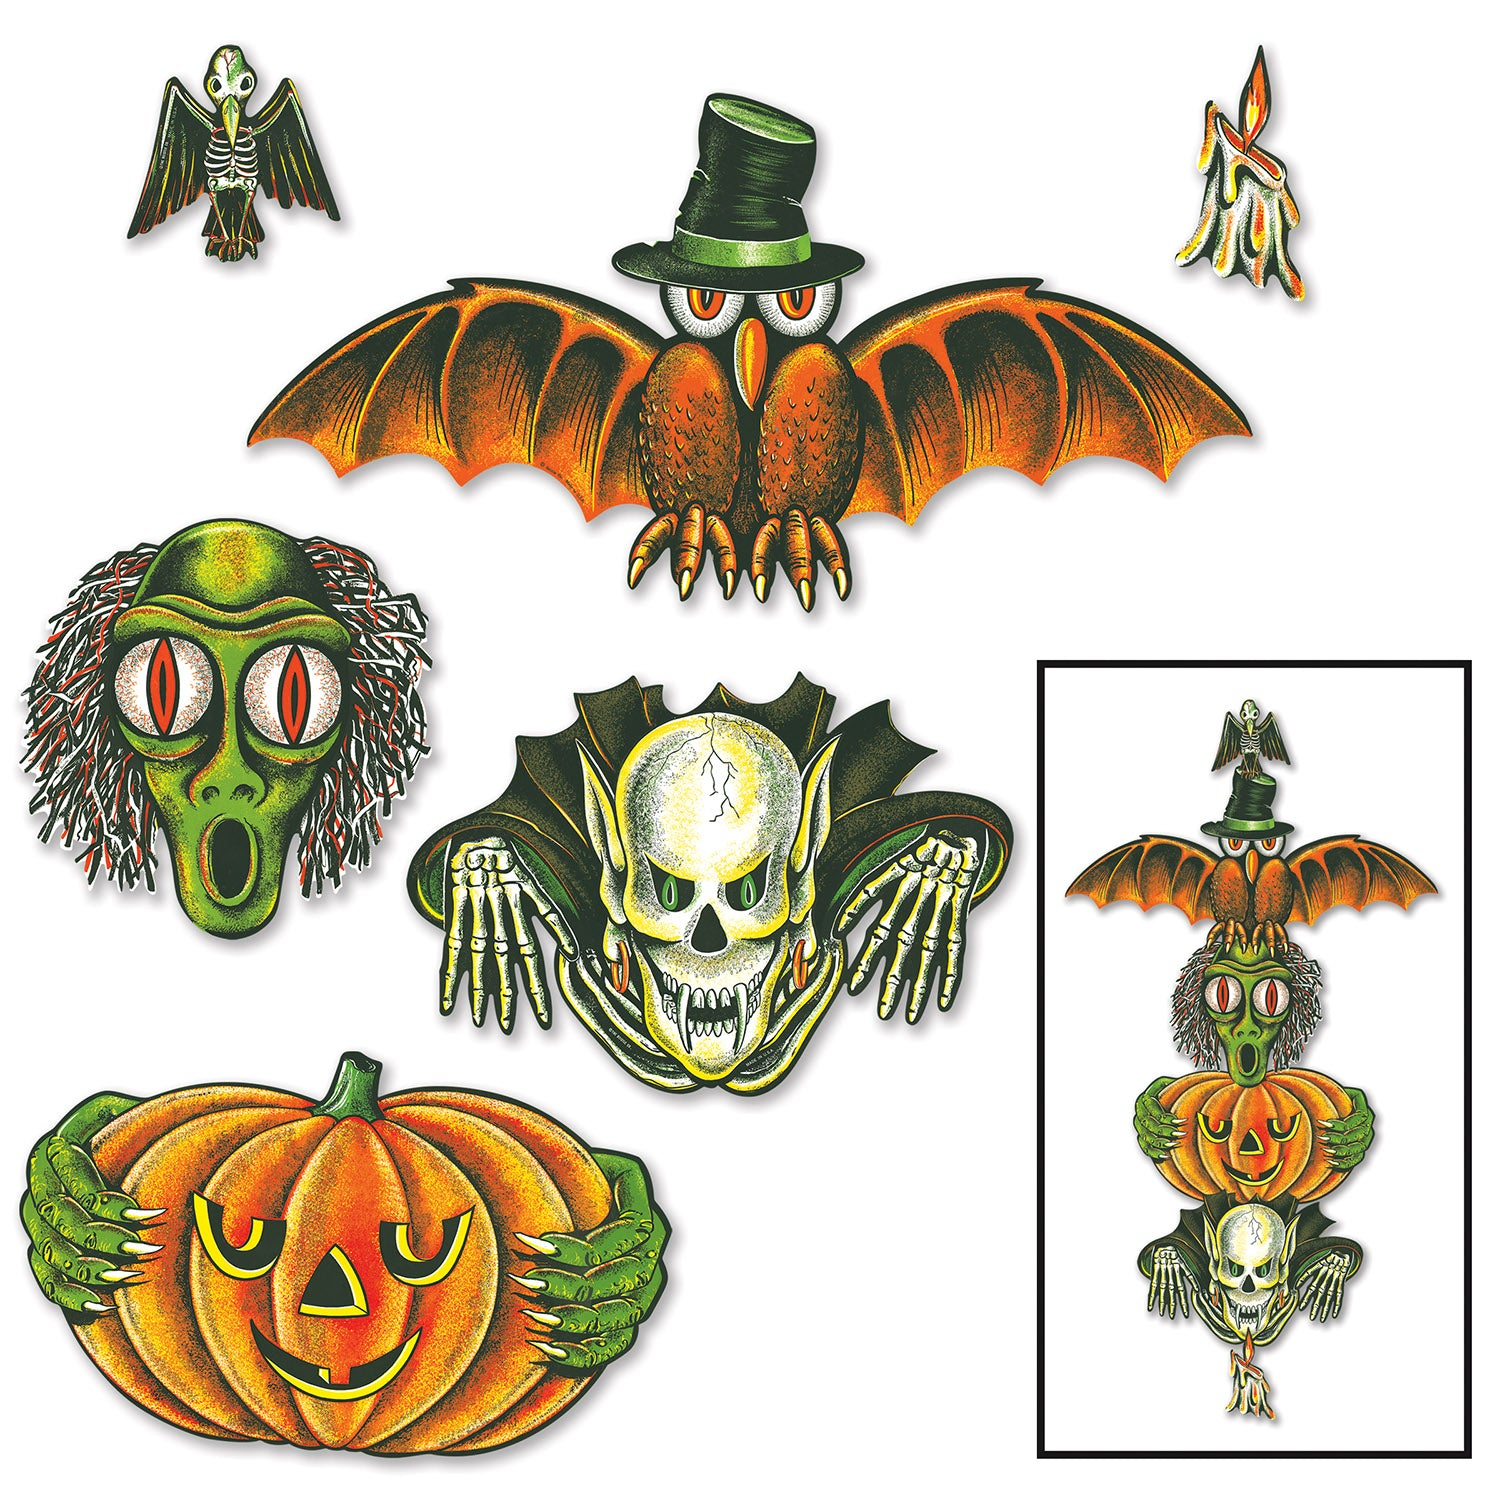 Vintage Halloween Totem Pole Cutouts (6/Pkg) by Beistle - Halloween Theme Decorations